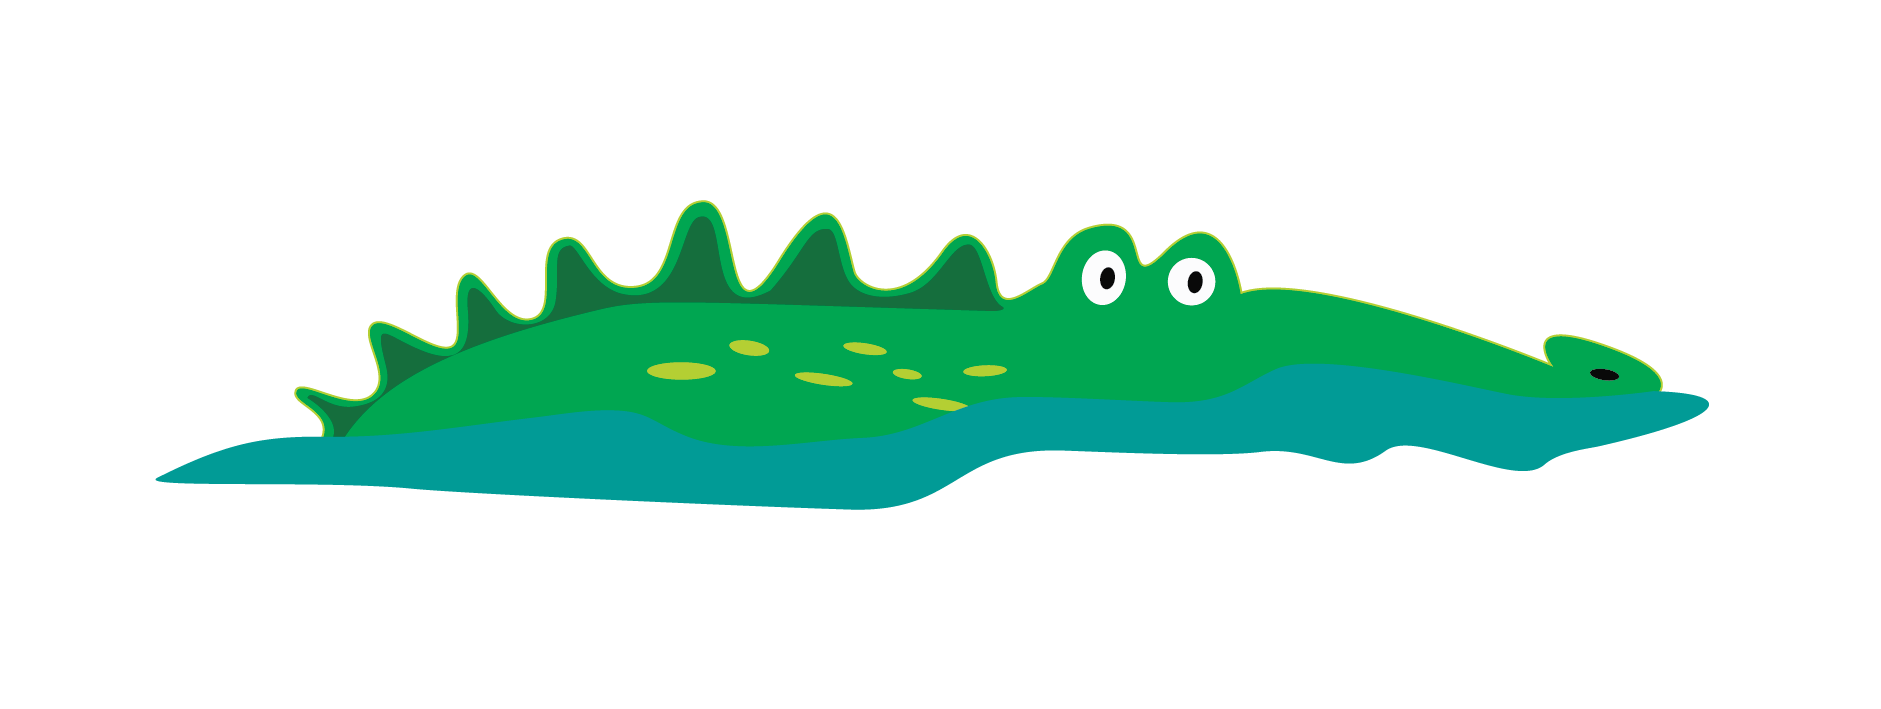 Cute Alligator Vector Clip Art